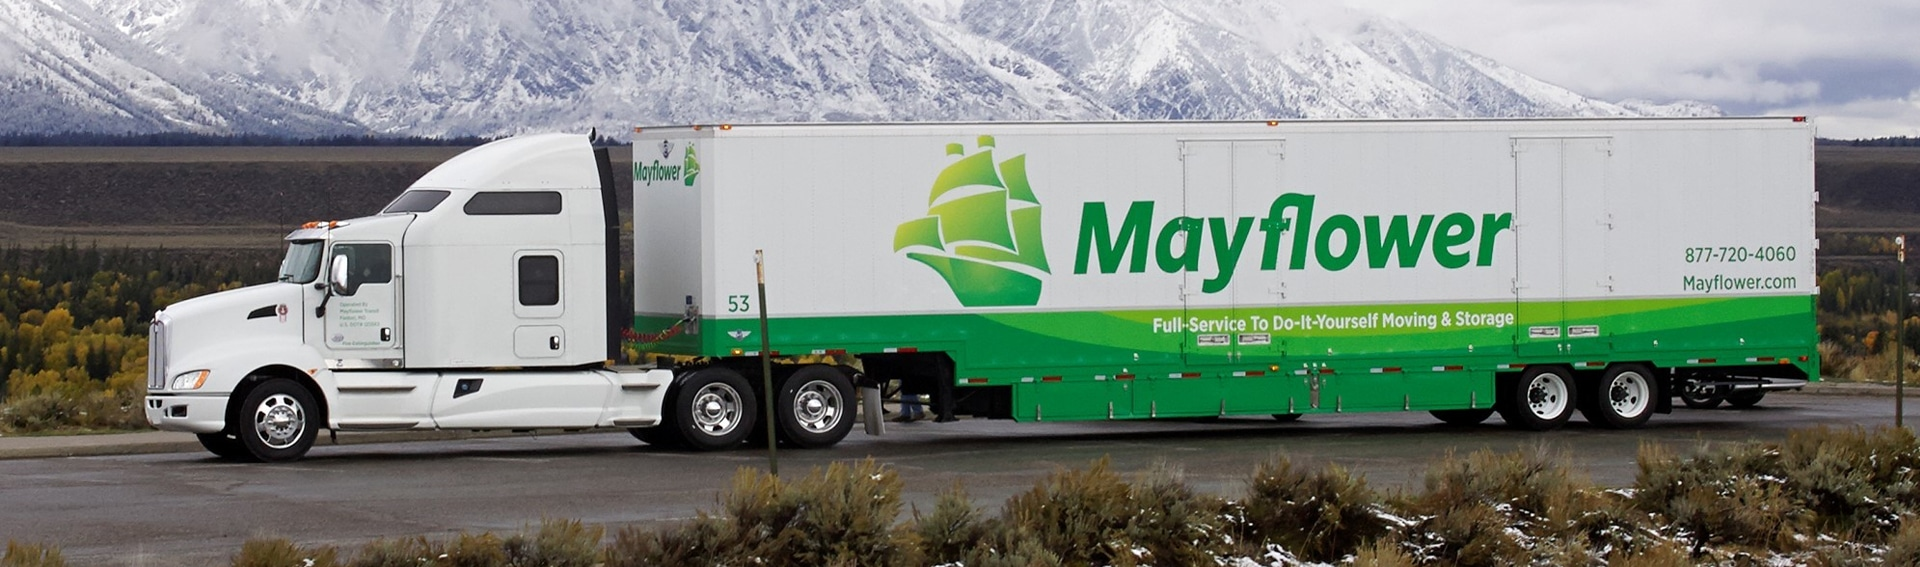 mayflower-mover